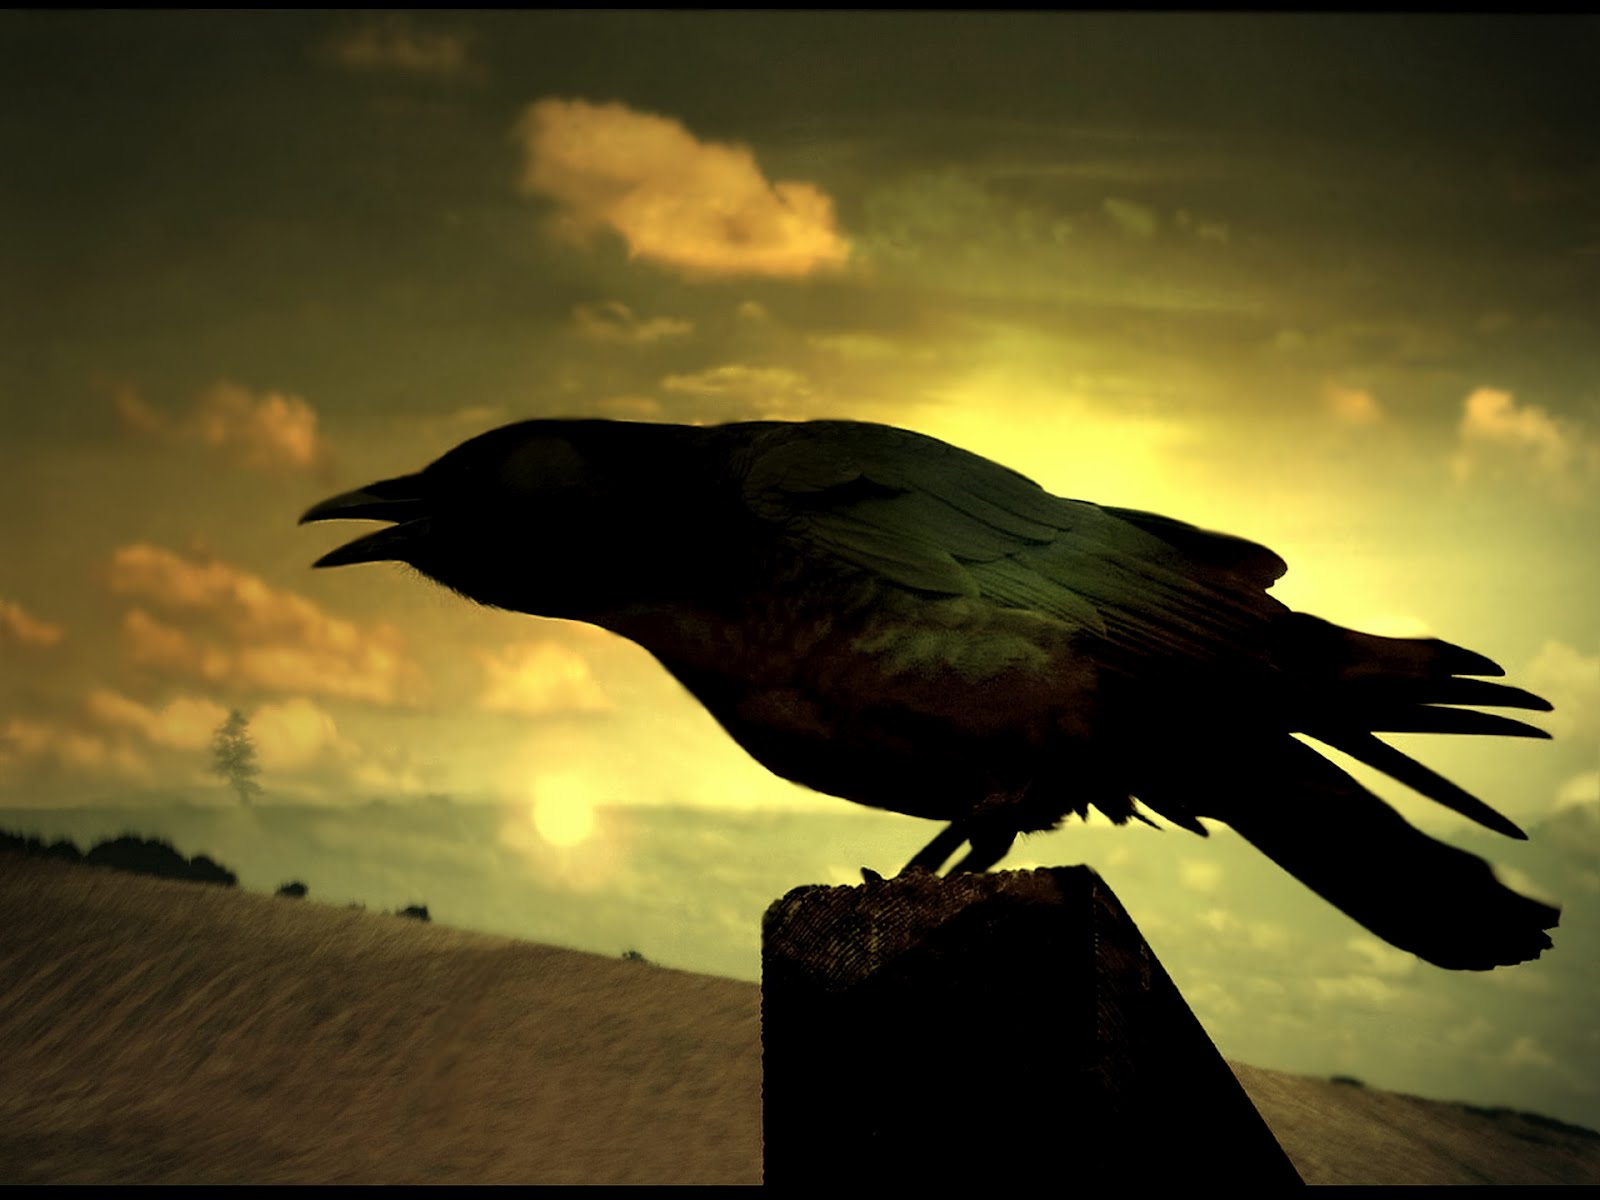 Evil crow wallpaper - photo#9